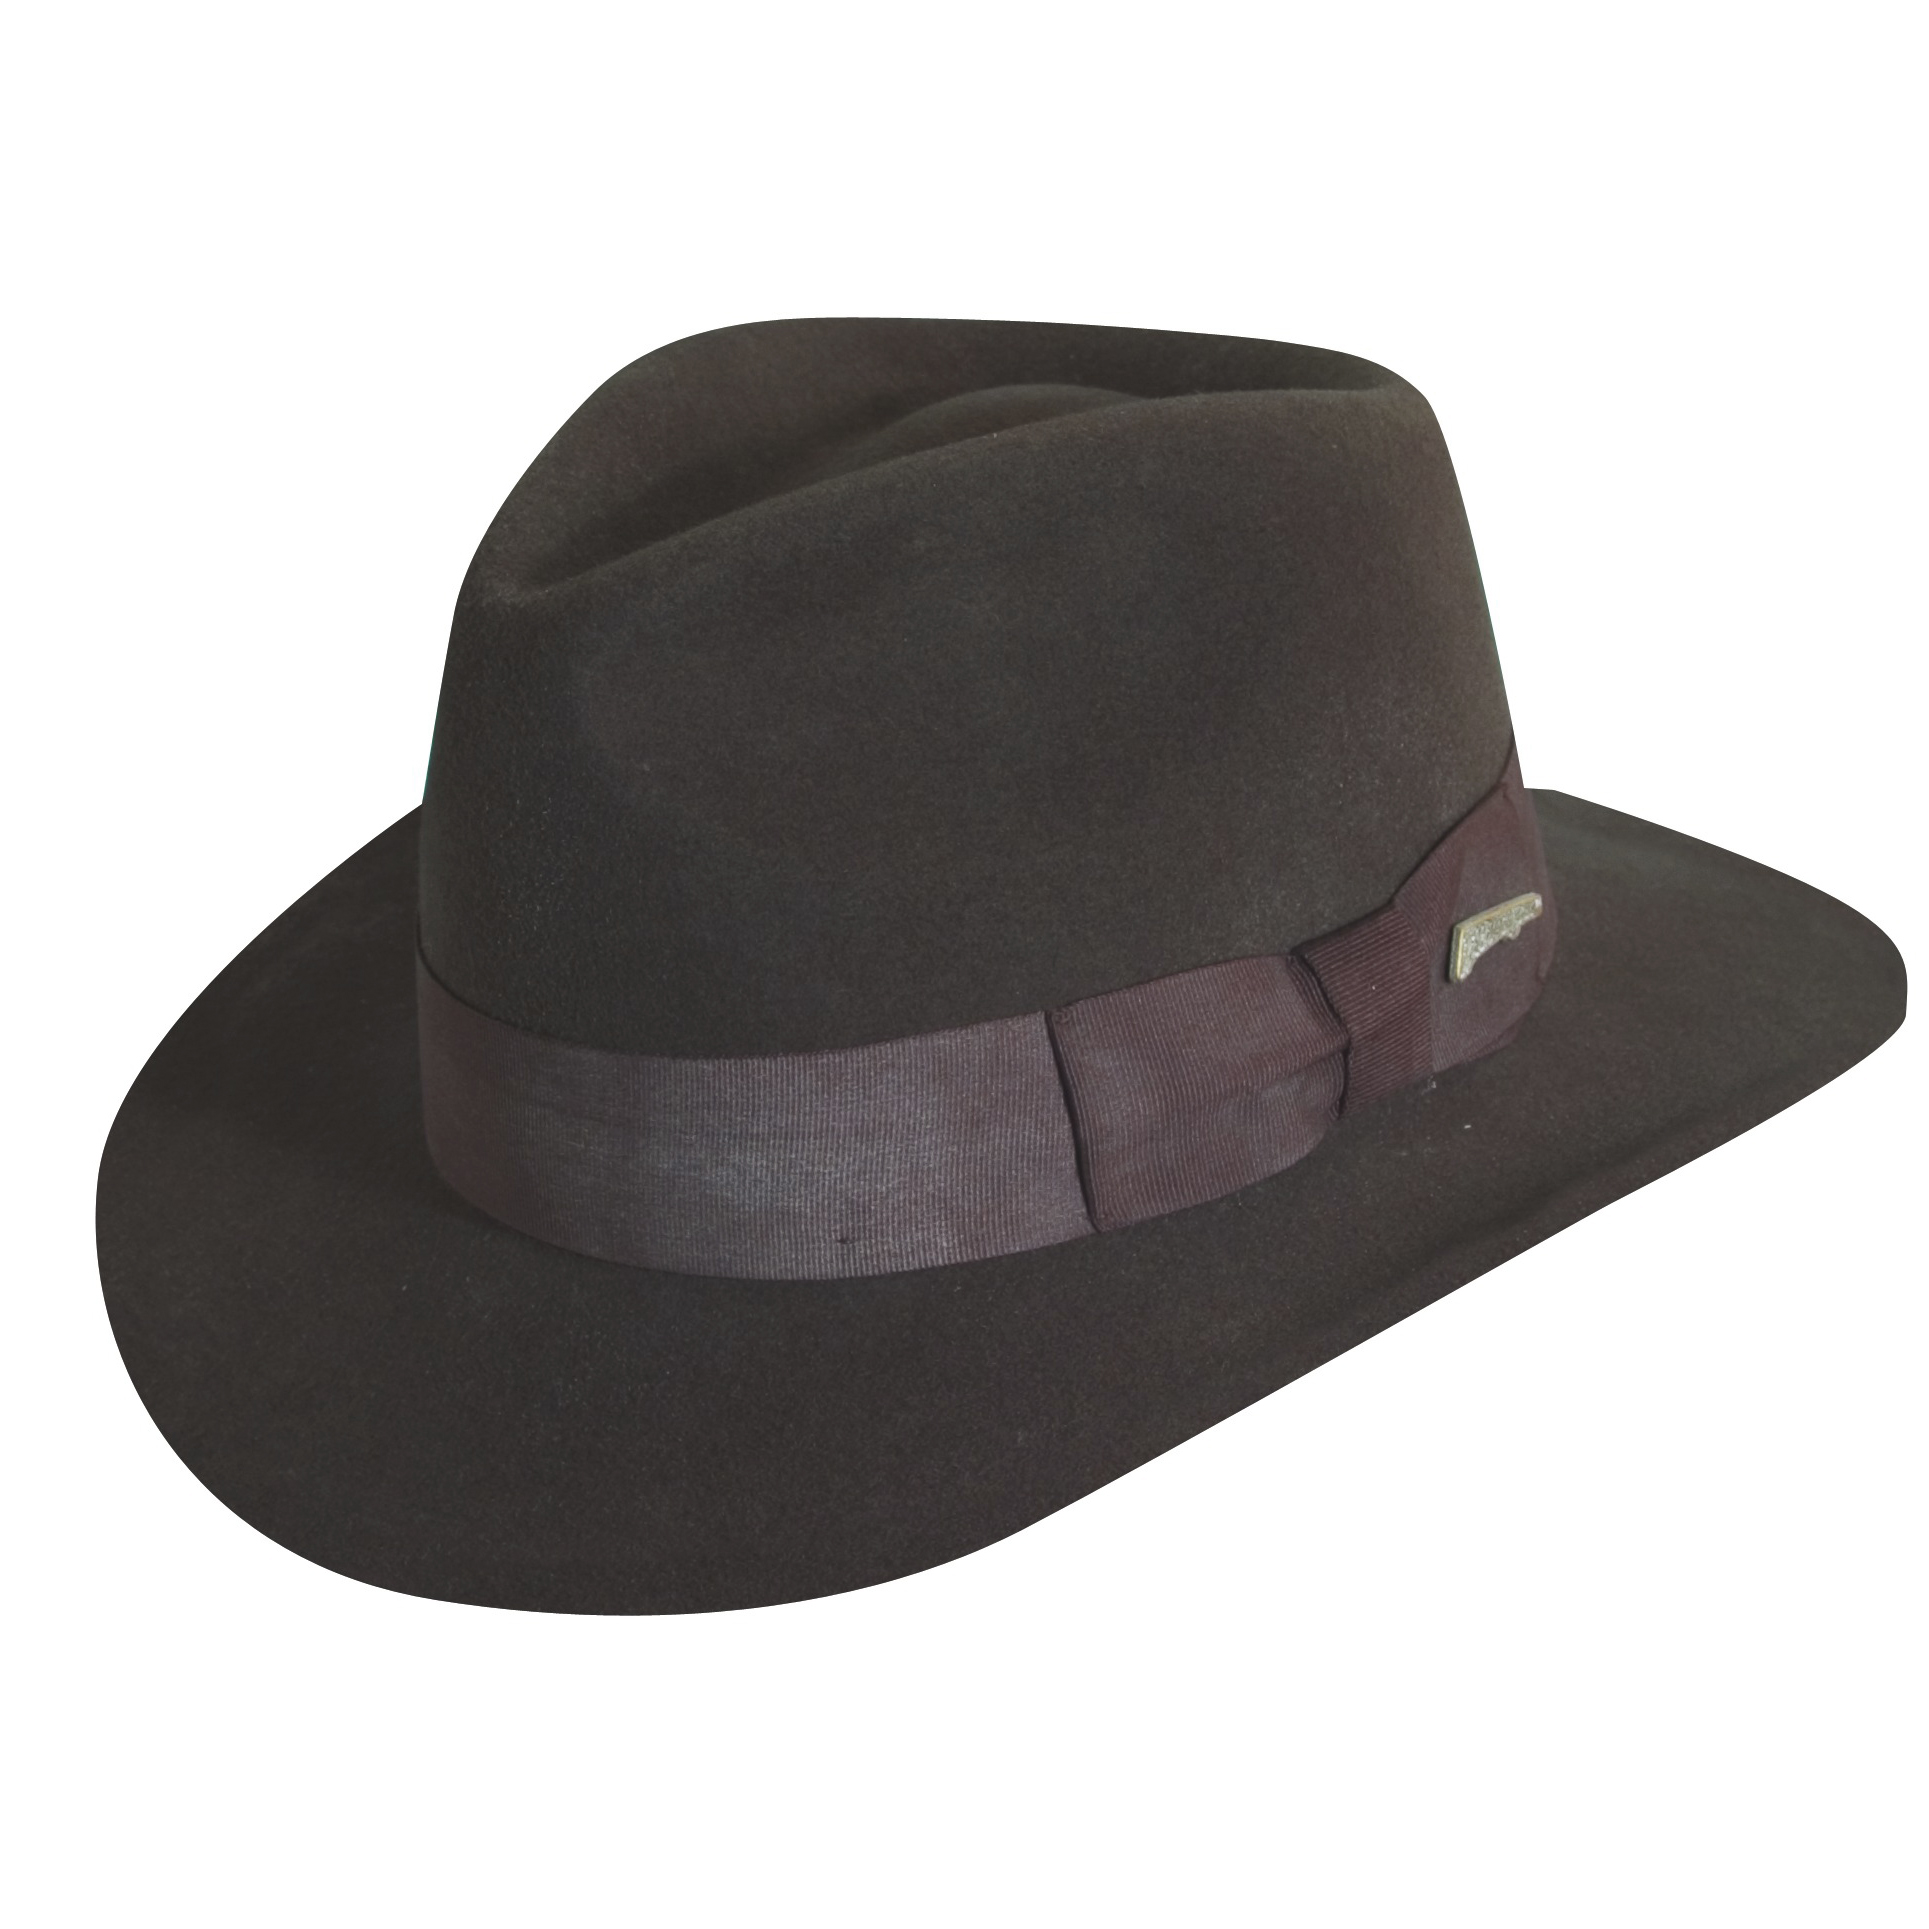 8a7f26b41e4 Pharrell Hat Felt Fedora For Woman Men Hats Black Top In